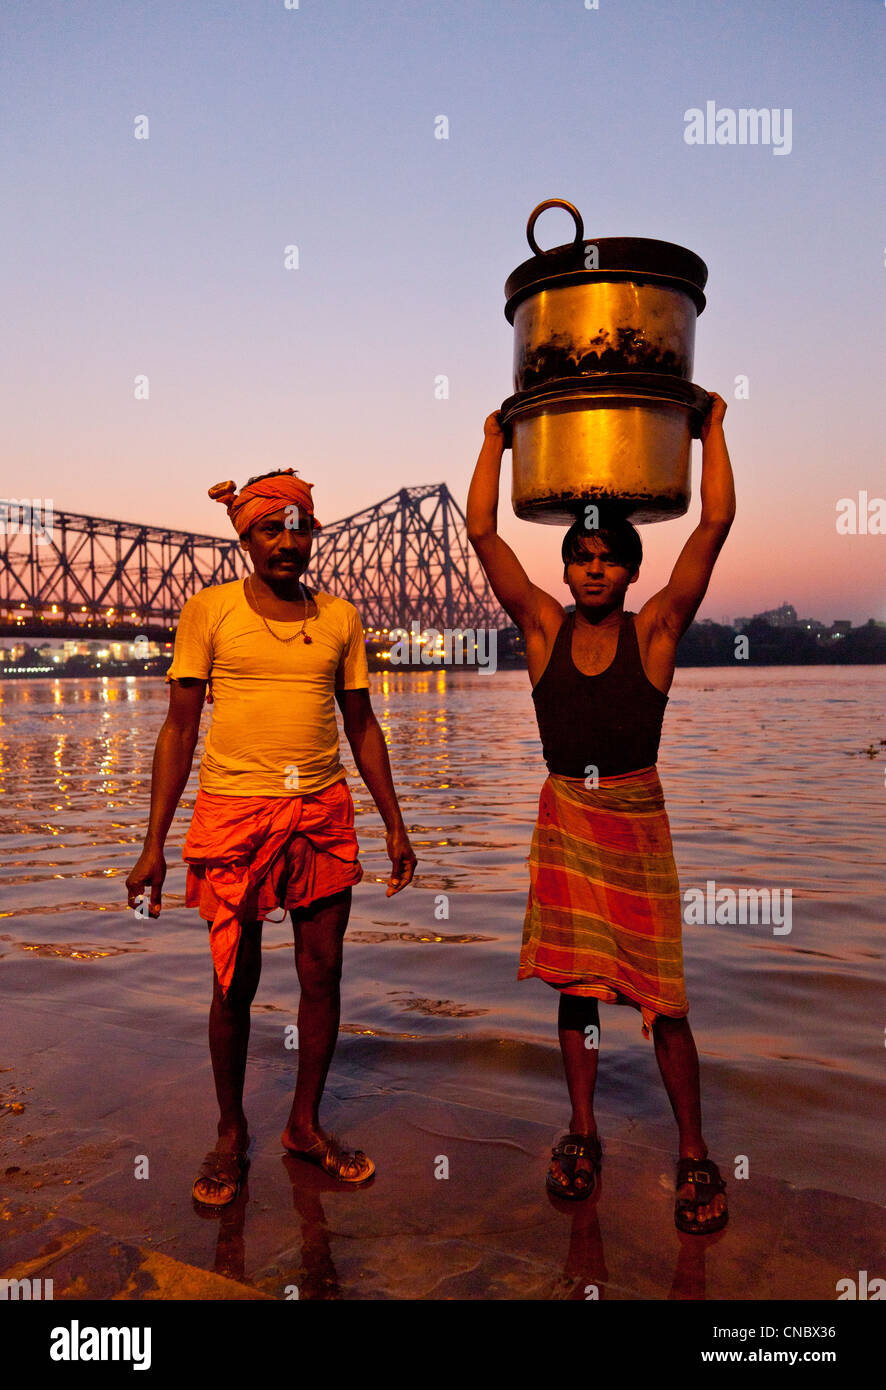 India, West Bengal, Kolkata (calcutta), two men with cooking utensils at Hooghly River with howrah suspension Bridge - Stock Image